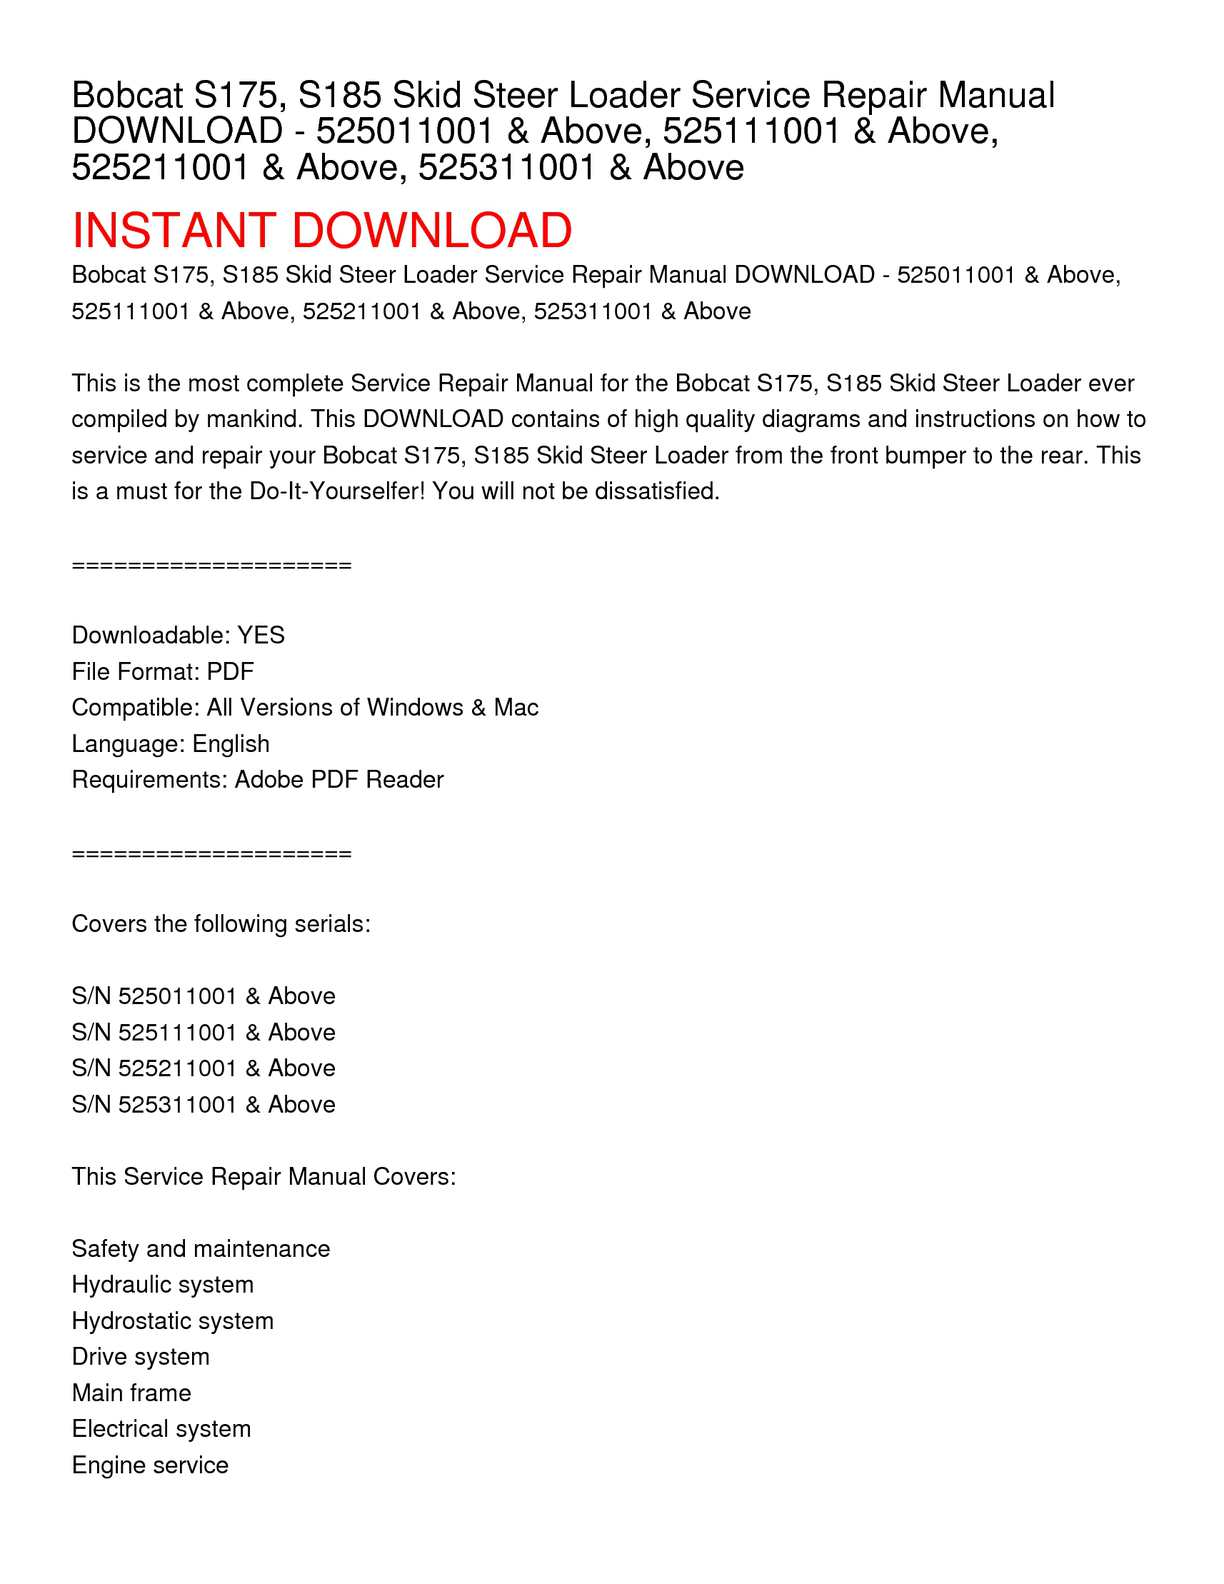 hight resolution of calam o bobcat s175 s185 skid steer loader service repair manual download 525011001 above 525111001 above 525211001 above 525311001 above